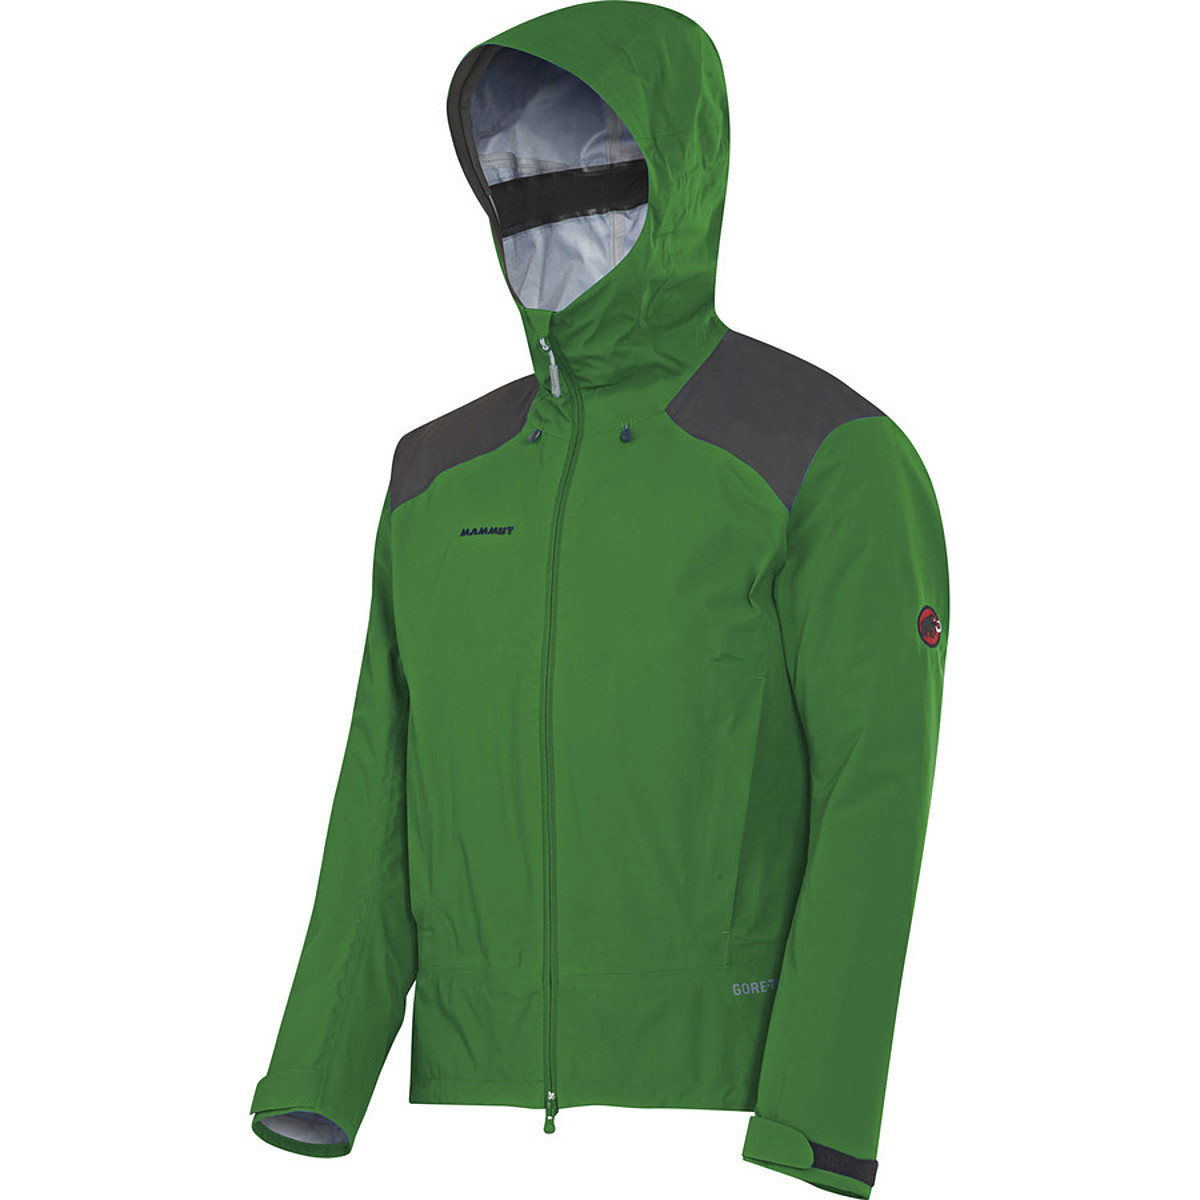 Mammut Segnas Advanced Jacket